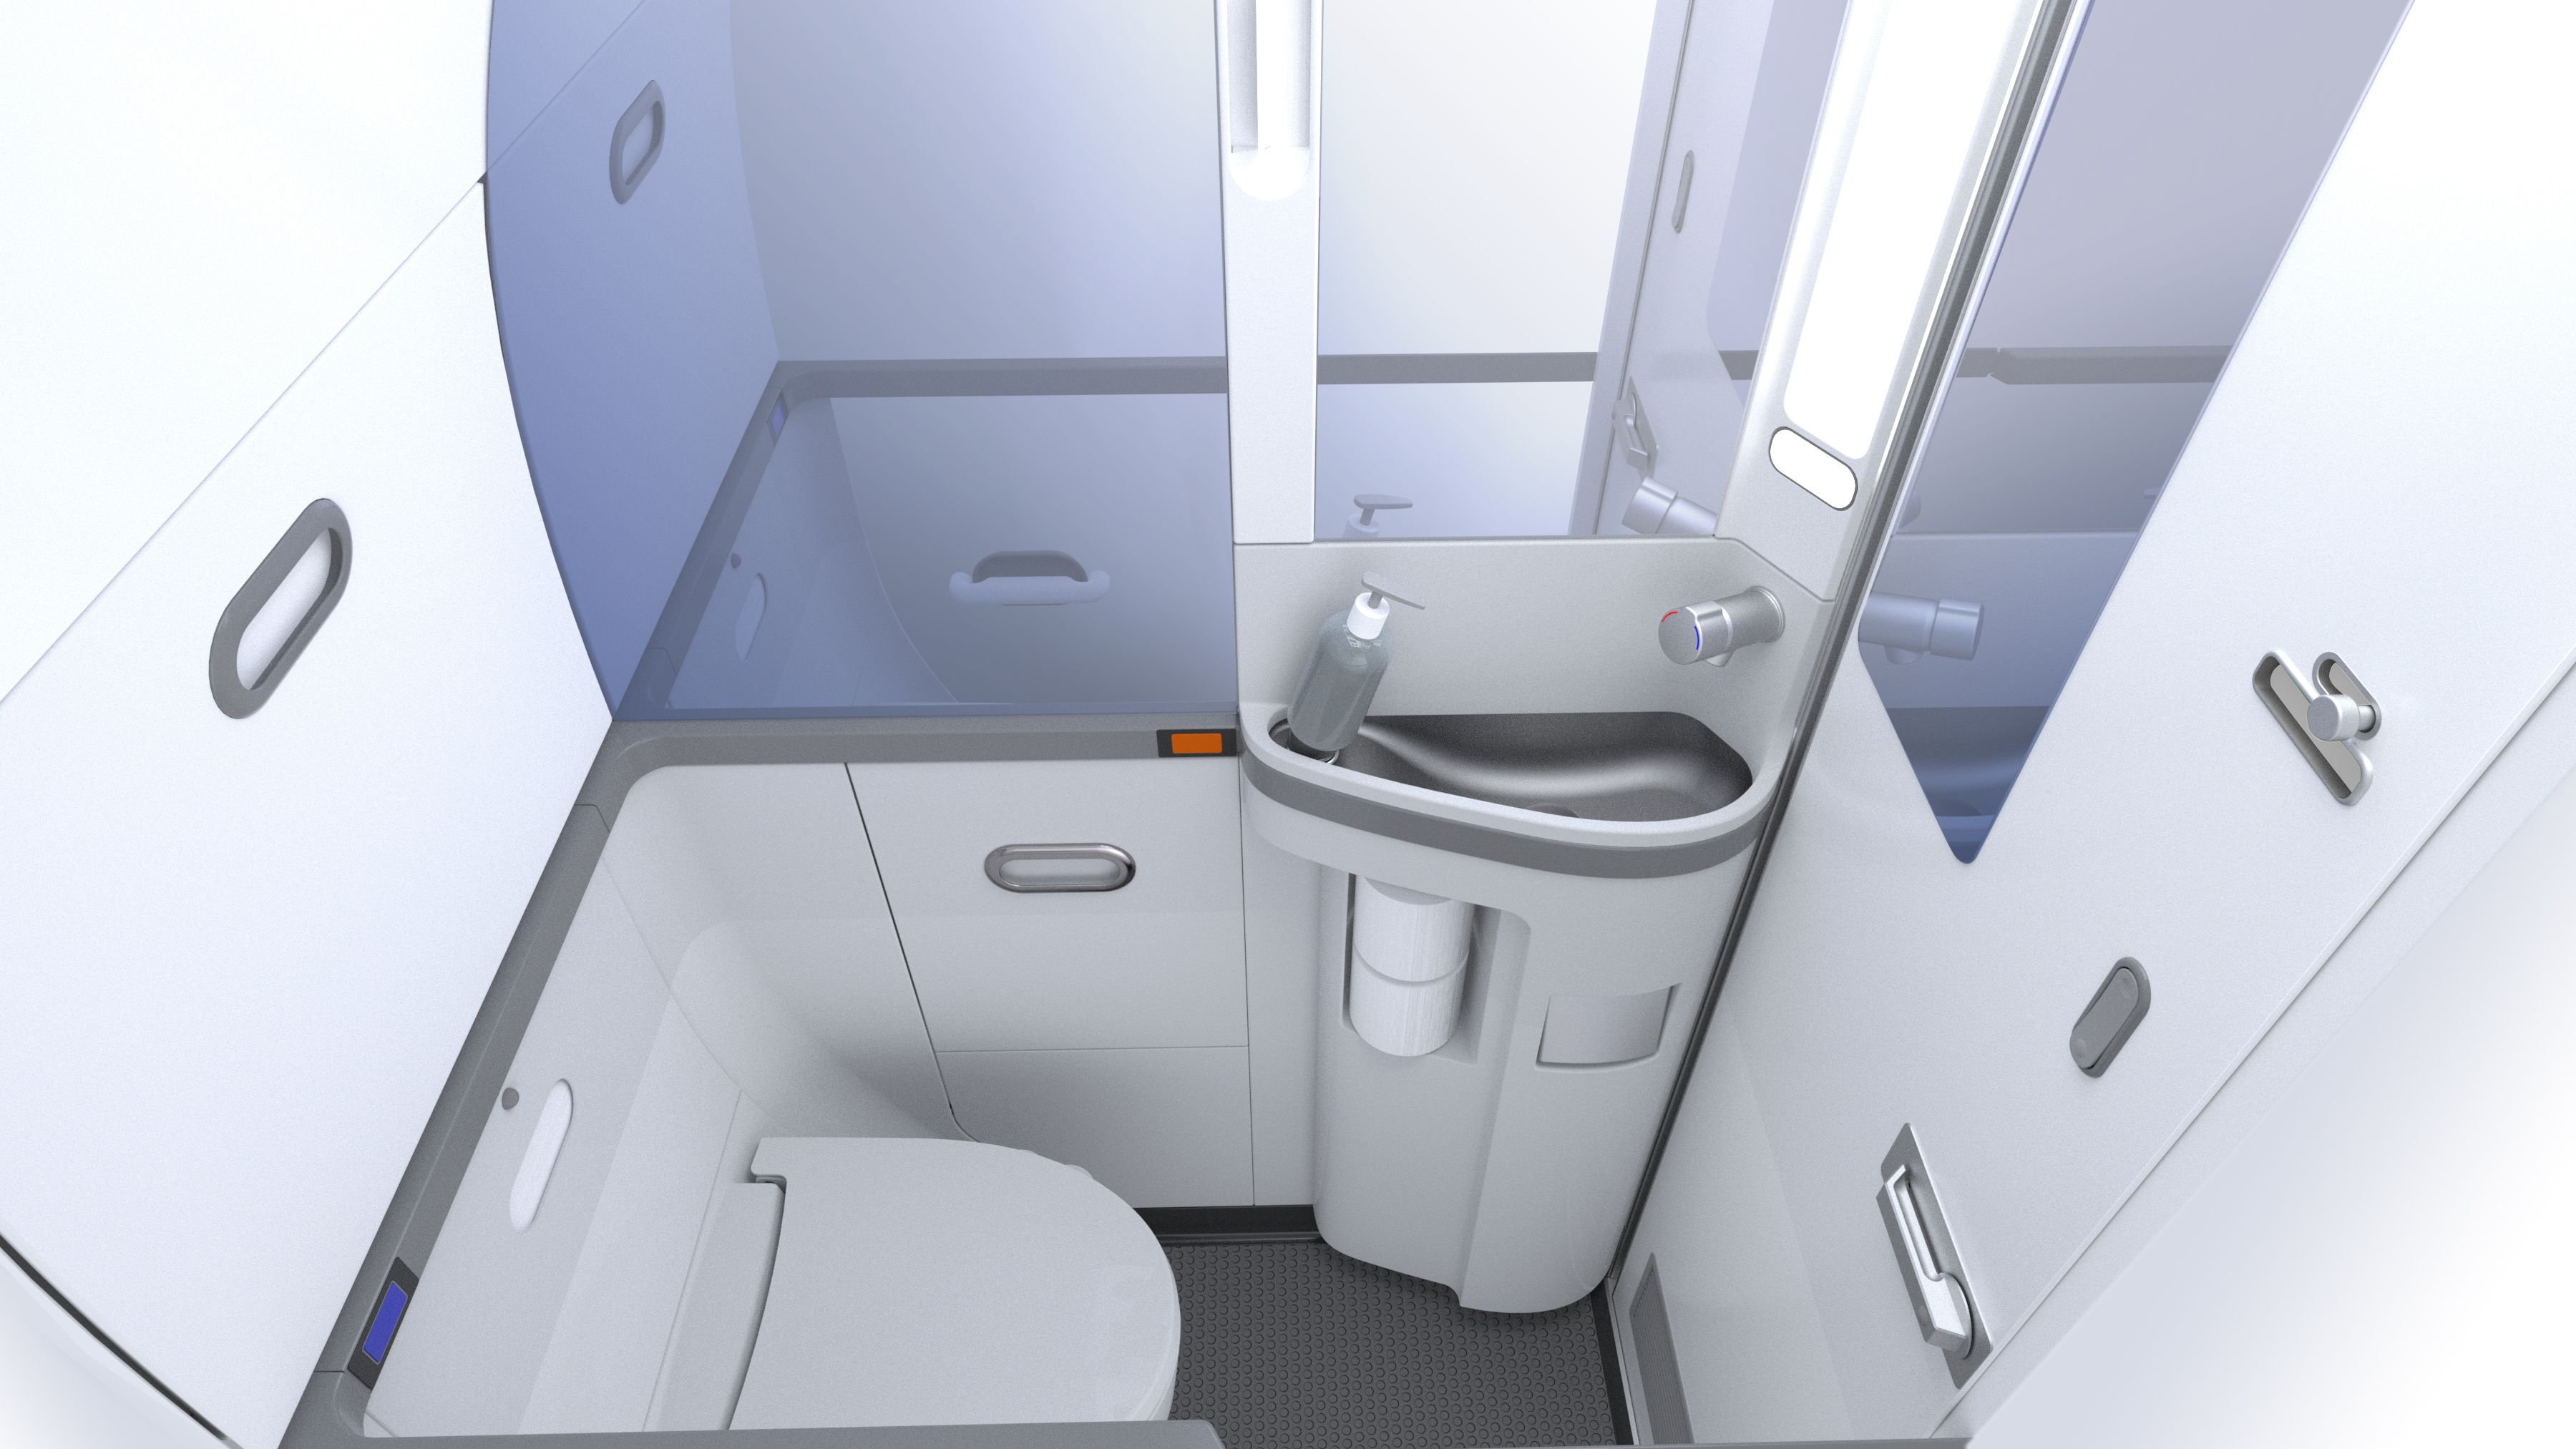 737 Advanced Lavatory - Aircraft Lavatories | Small ...